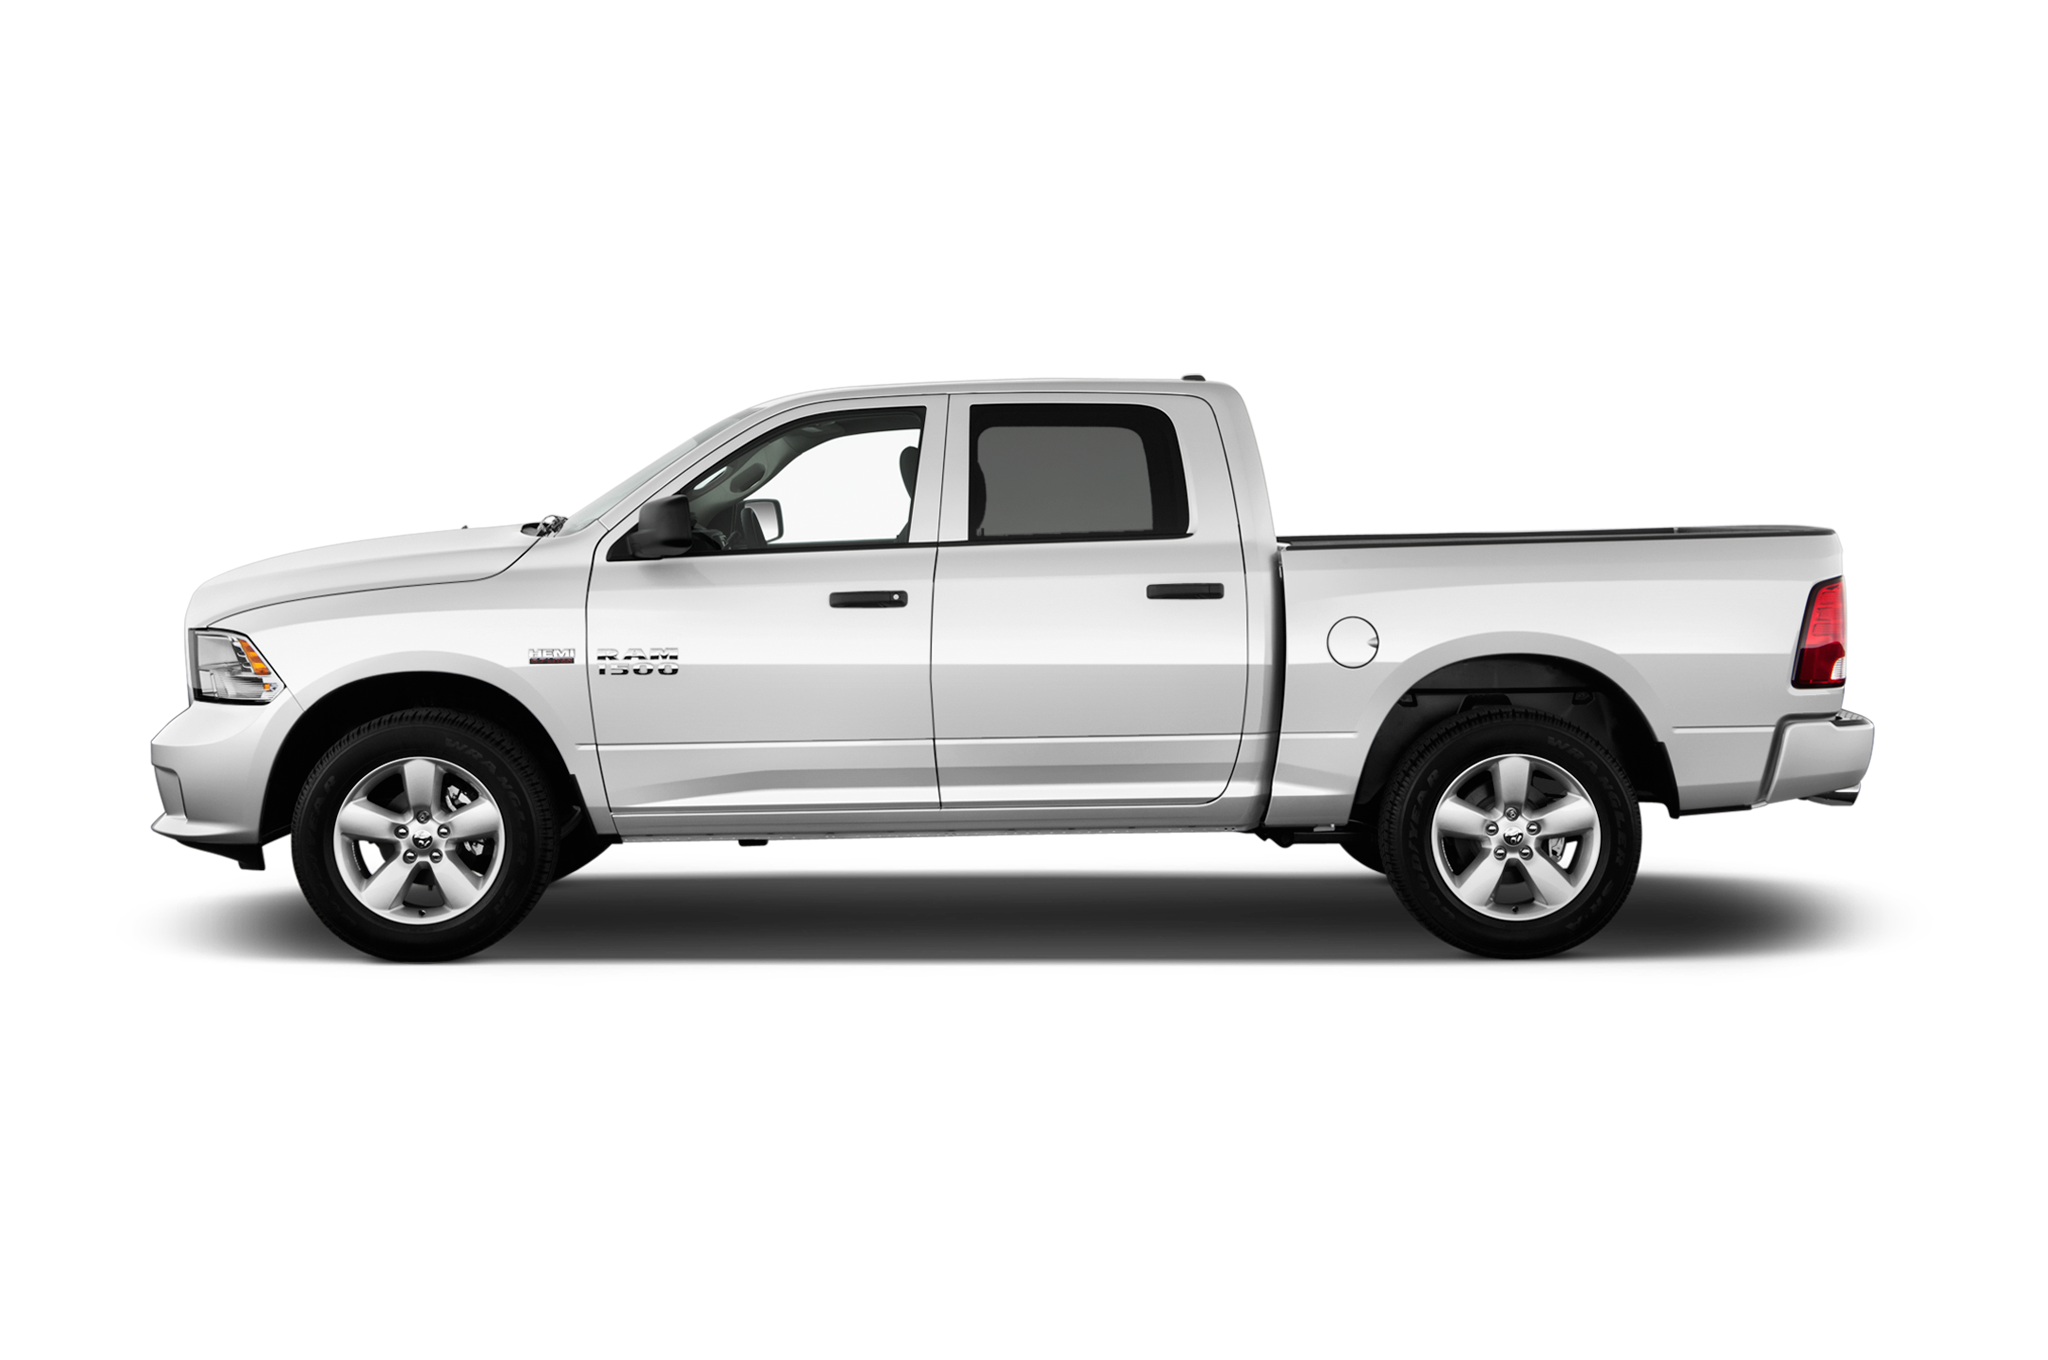 2017 ram 1500 gains two new limited edition color packages automobile magazine. Black Bedroom Furniture Sets. Home Design Ideas